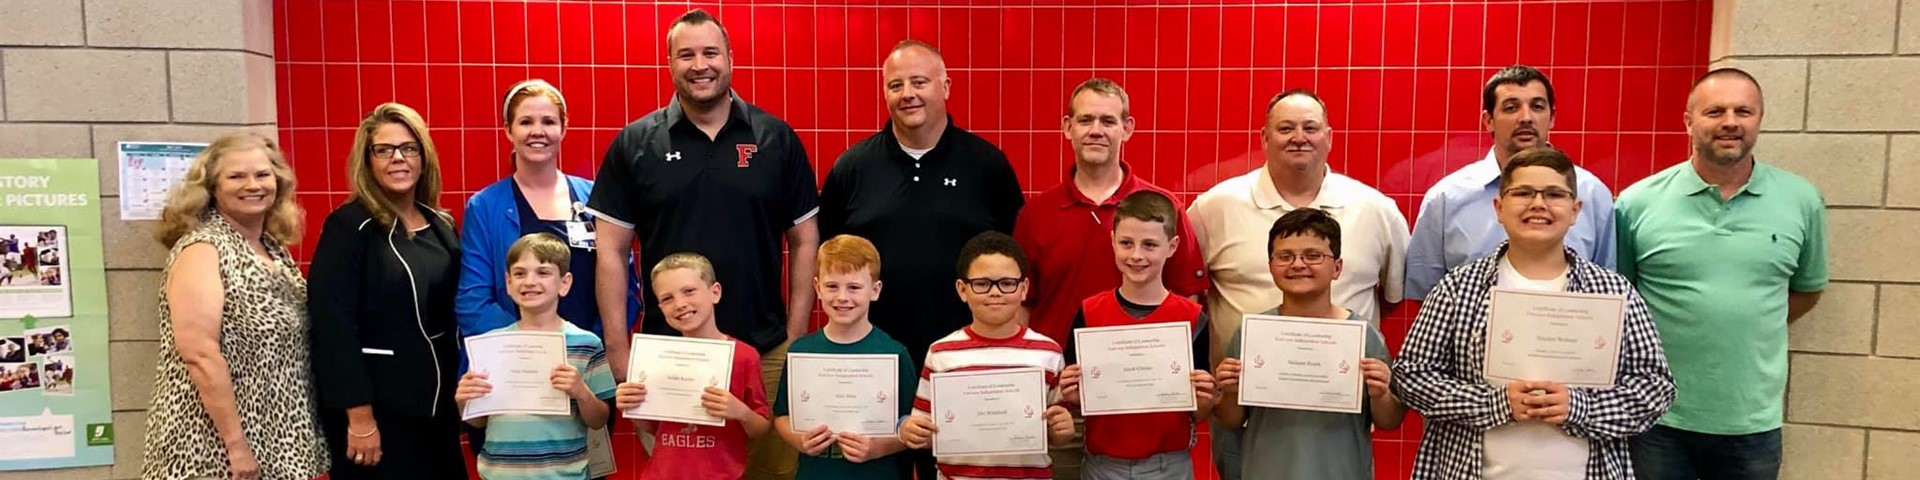 Fairview Board of Education Recognizes the Third Grade Basketball Team at May Board Meeting